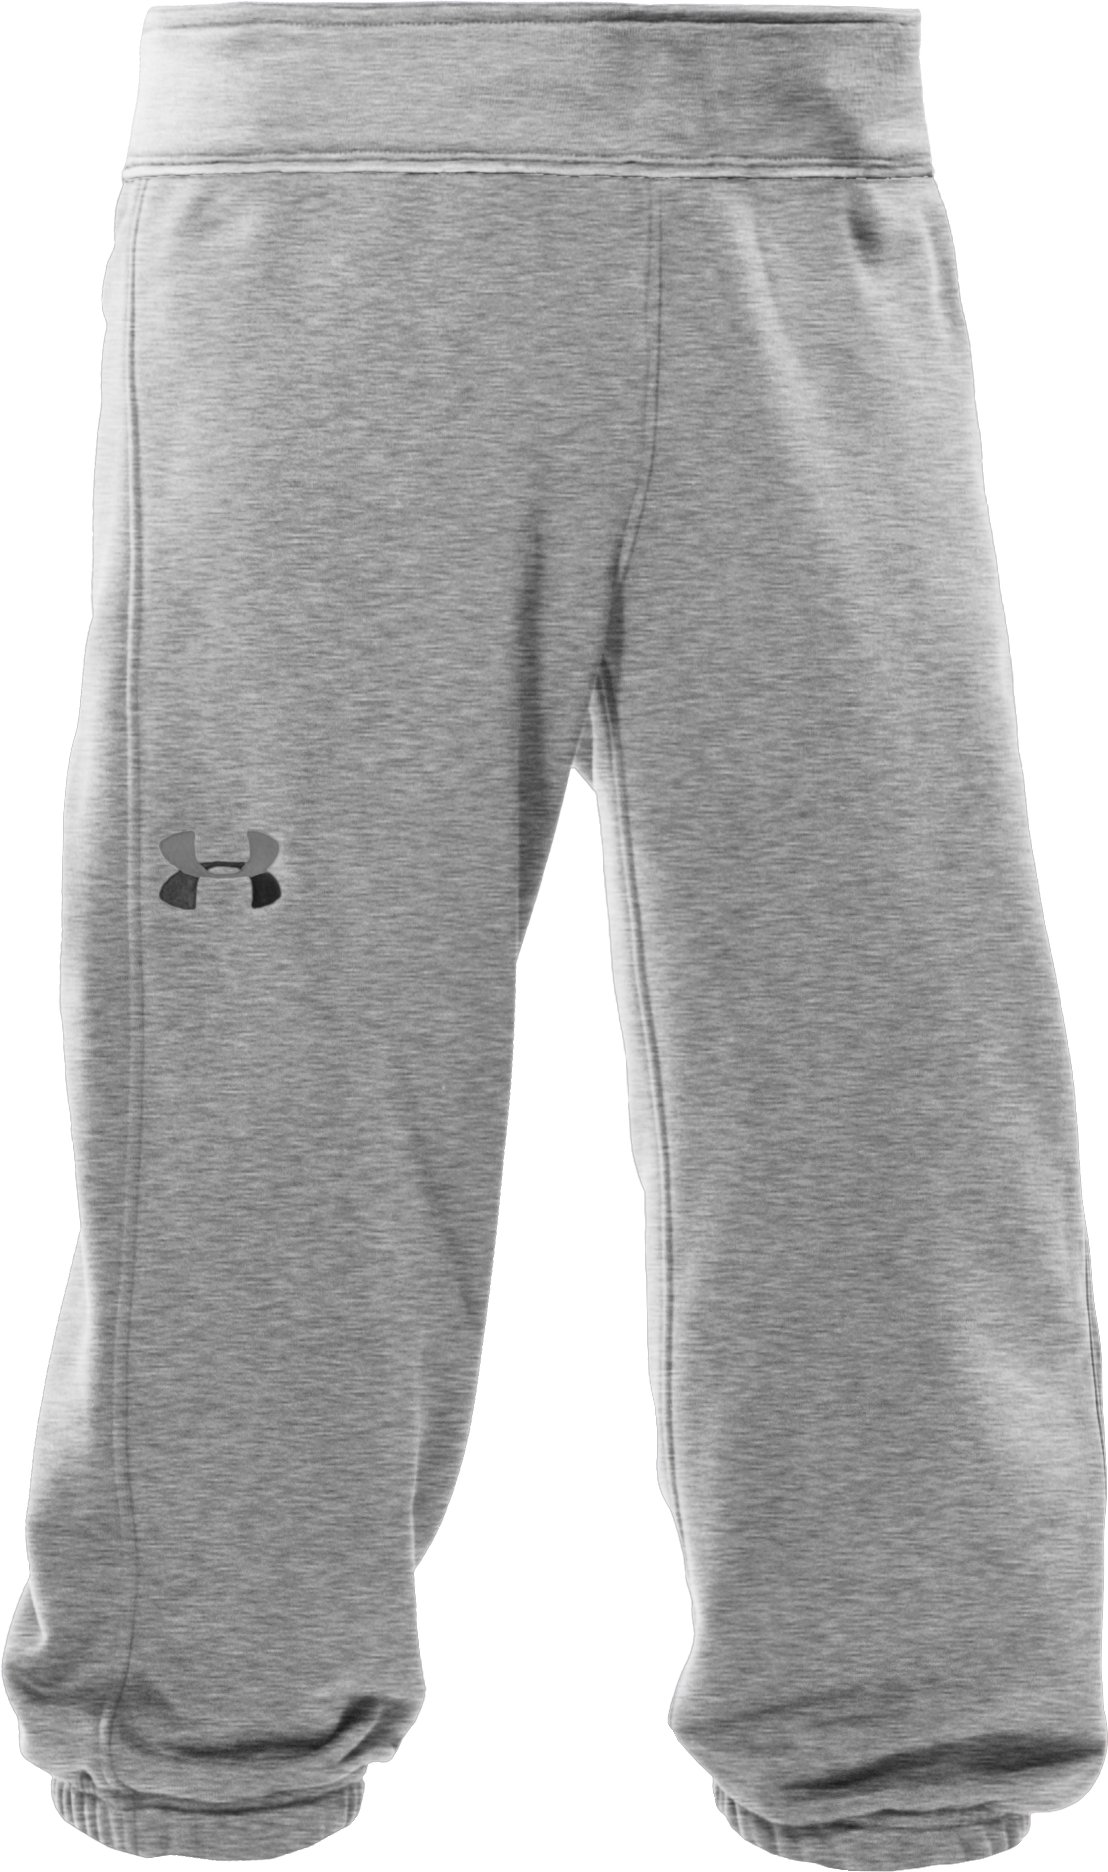 Girls' French Terry Capri Pants, True Gray Heather, undefined